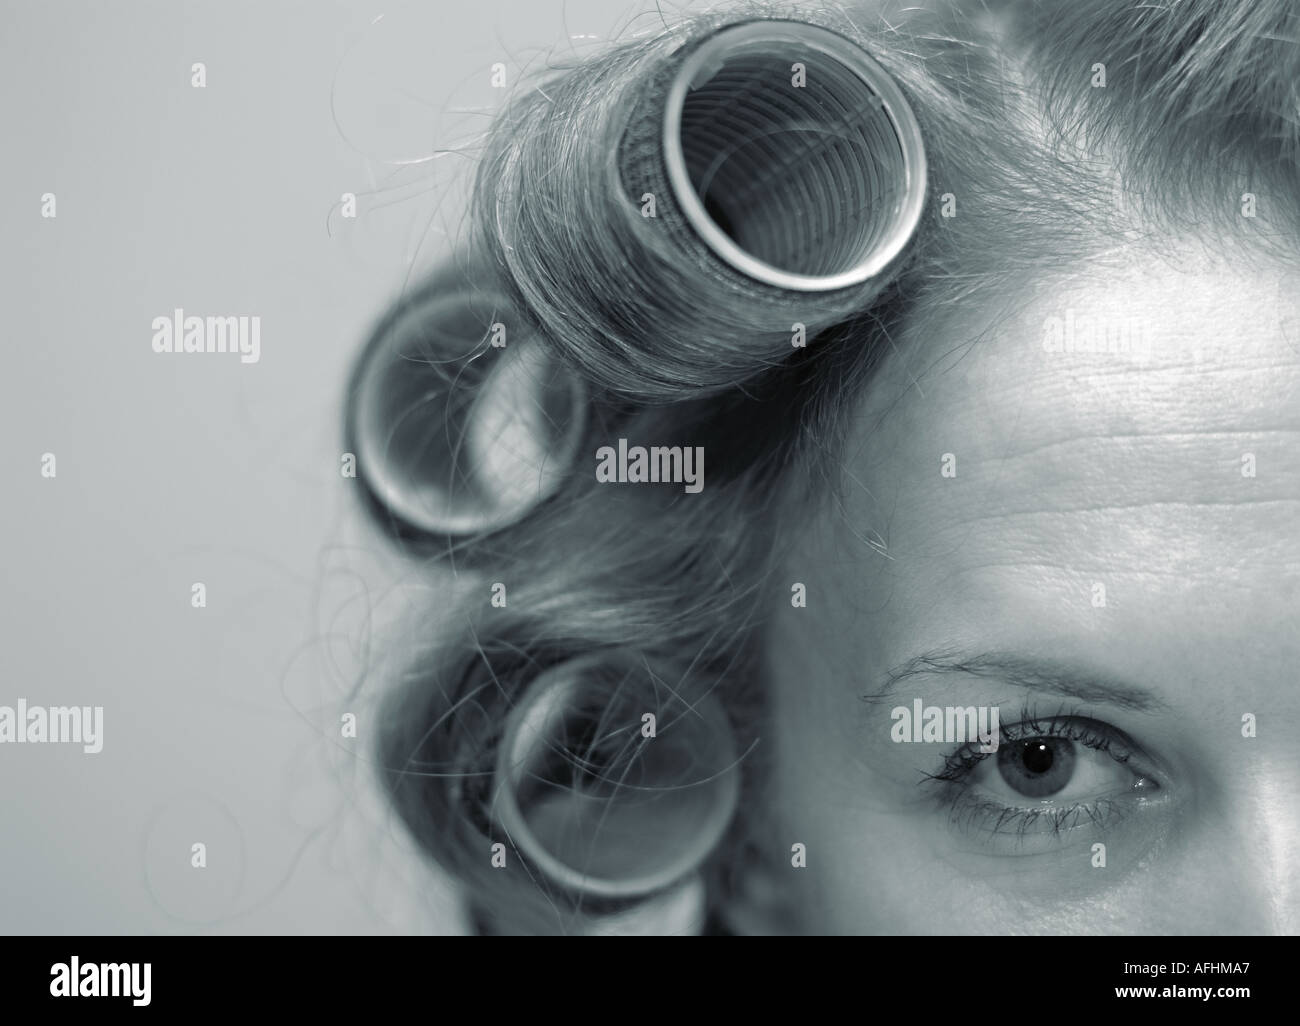 Abstract of a Young Woman with Rollers in Her Hair - Stock Image